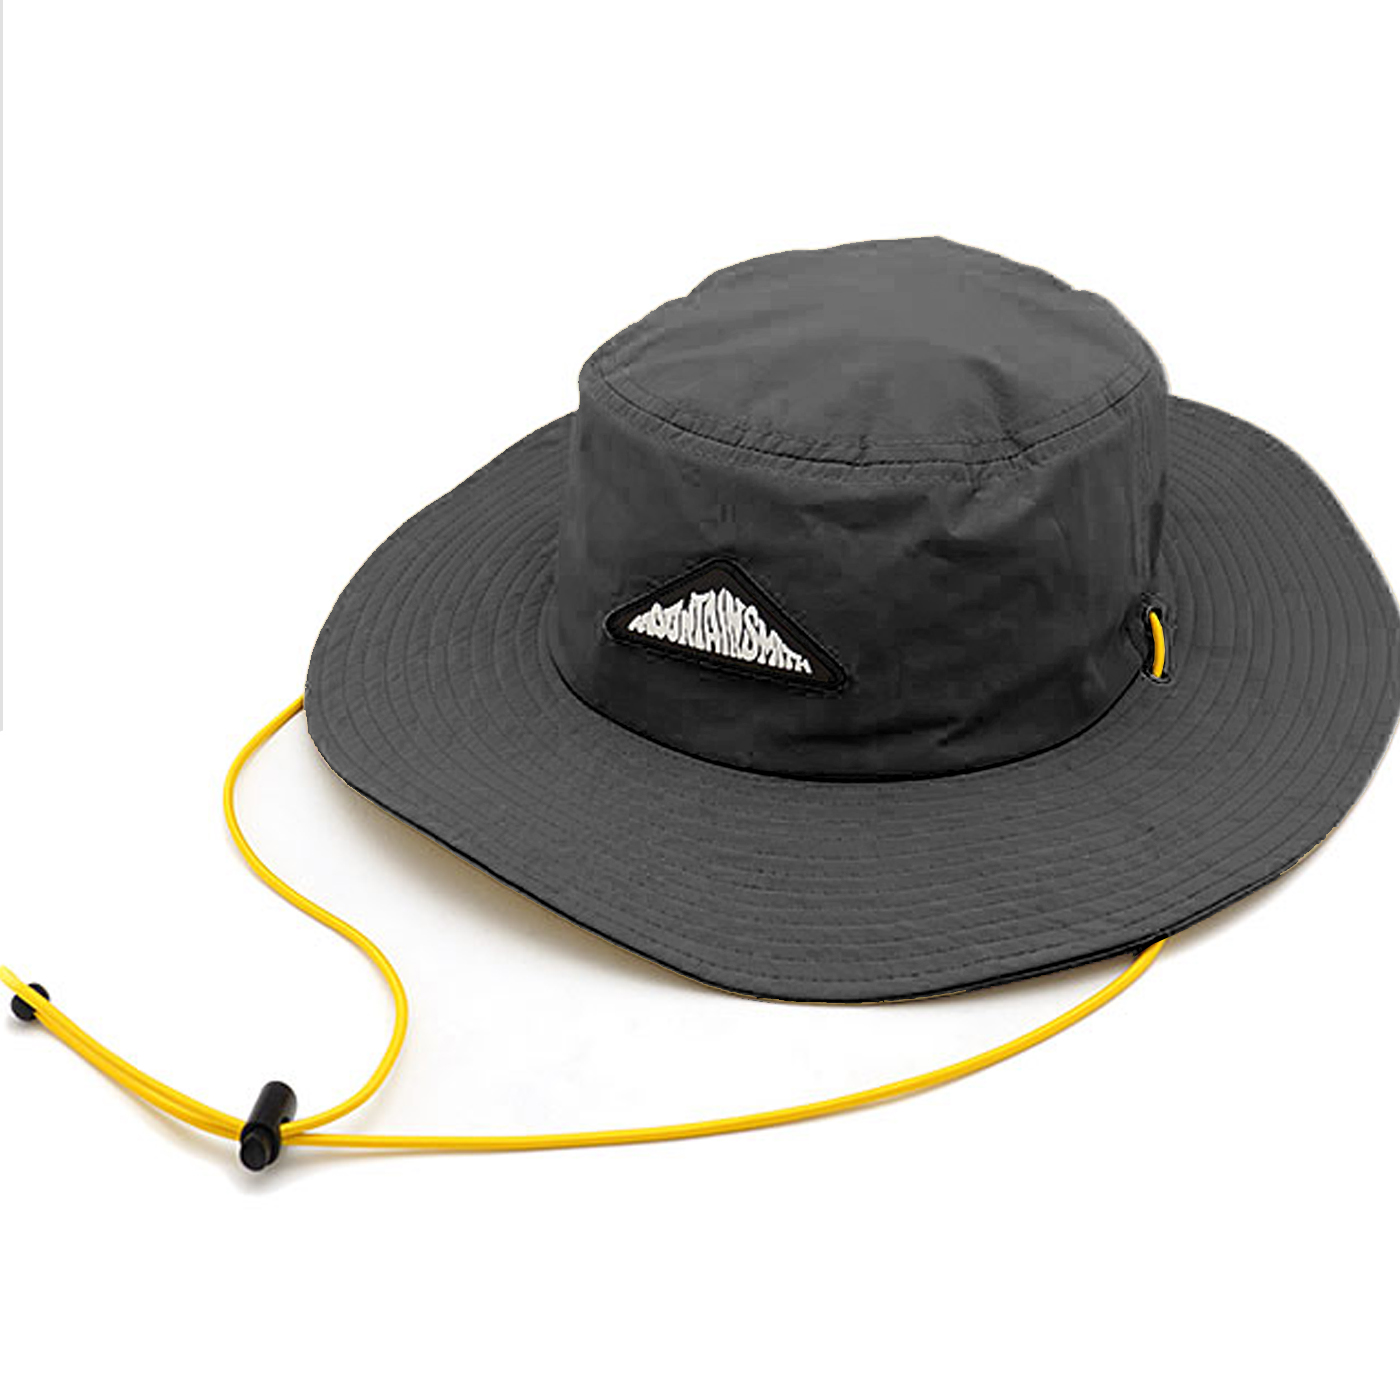 product: MS GARFIELD HAT / color: BLACK 1